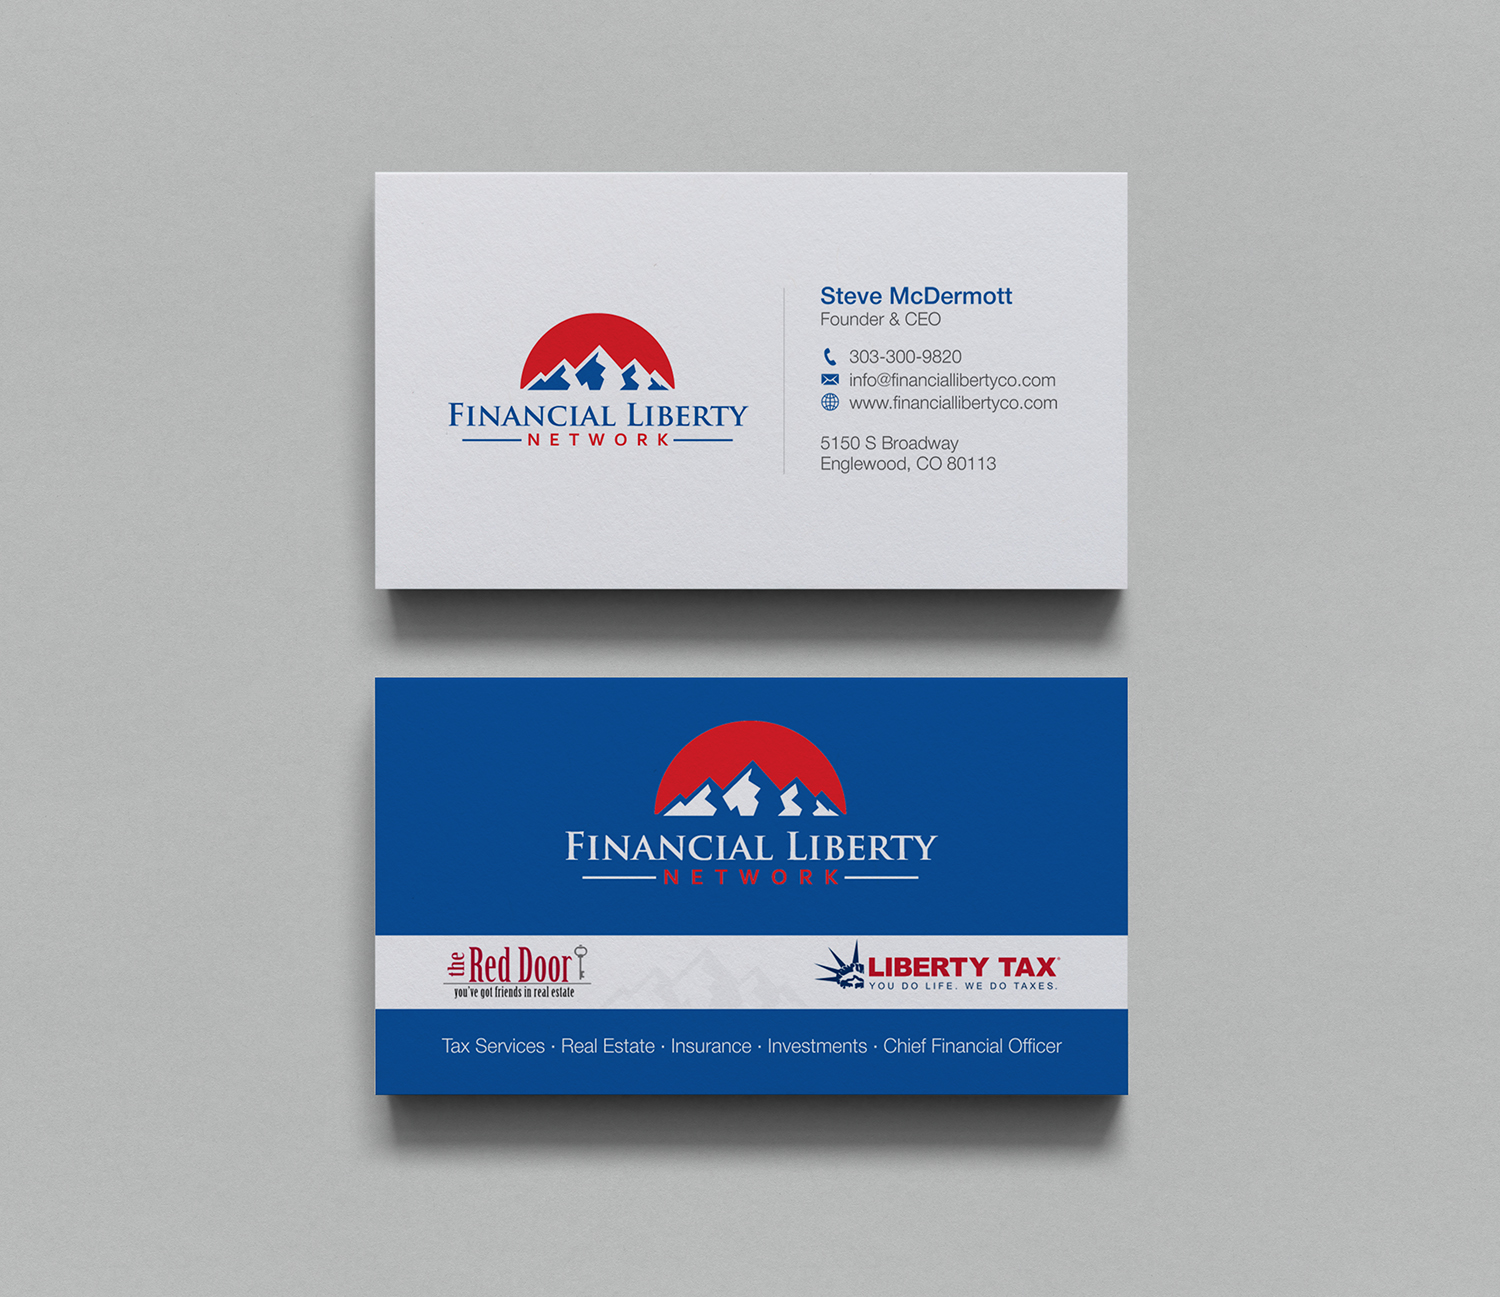 Financial business card design for a company by logodentity design business card design by logodentity for this project design 16939034 colourmoves